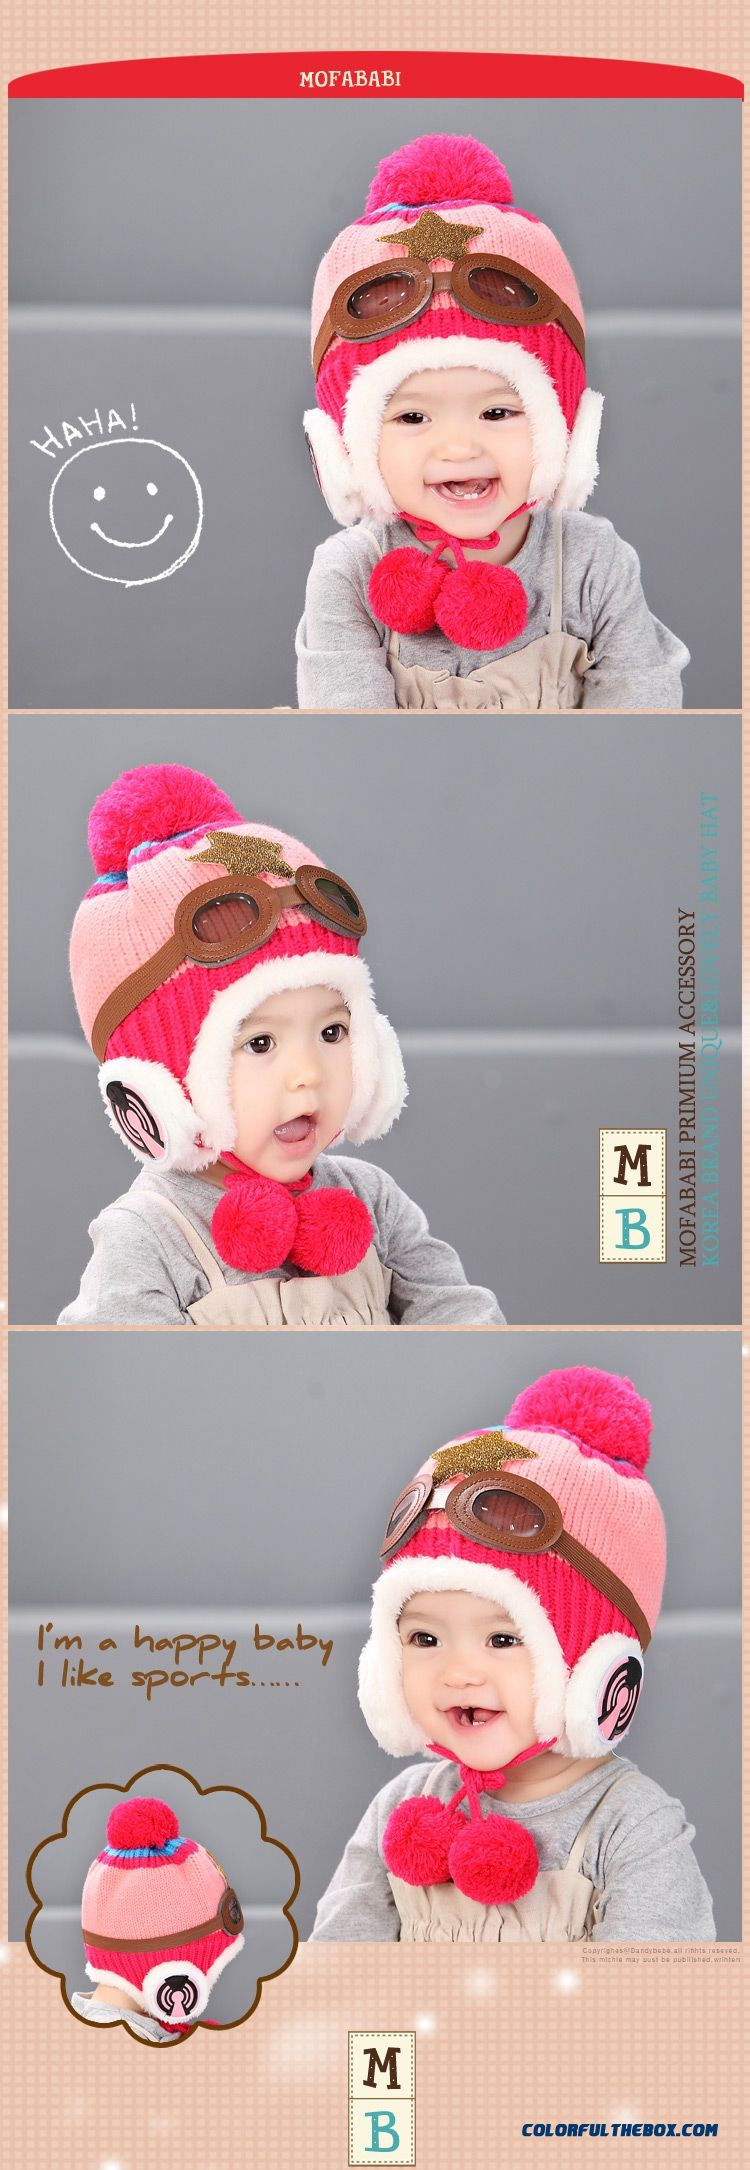 ... Adorkable Lovely Aviator Glasses Wool Hat Fall Winter Infants Kids Hats  Accessories For Girls - detail c00d7b58aa76